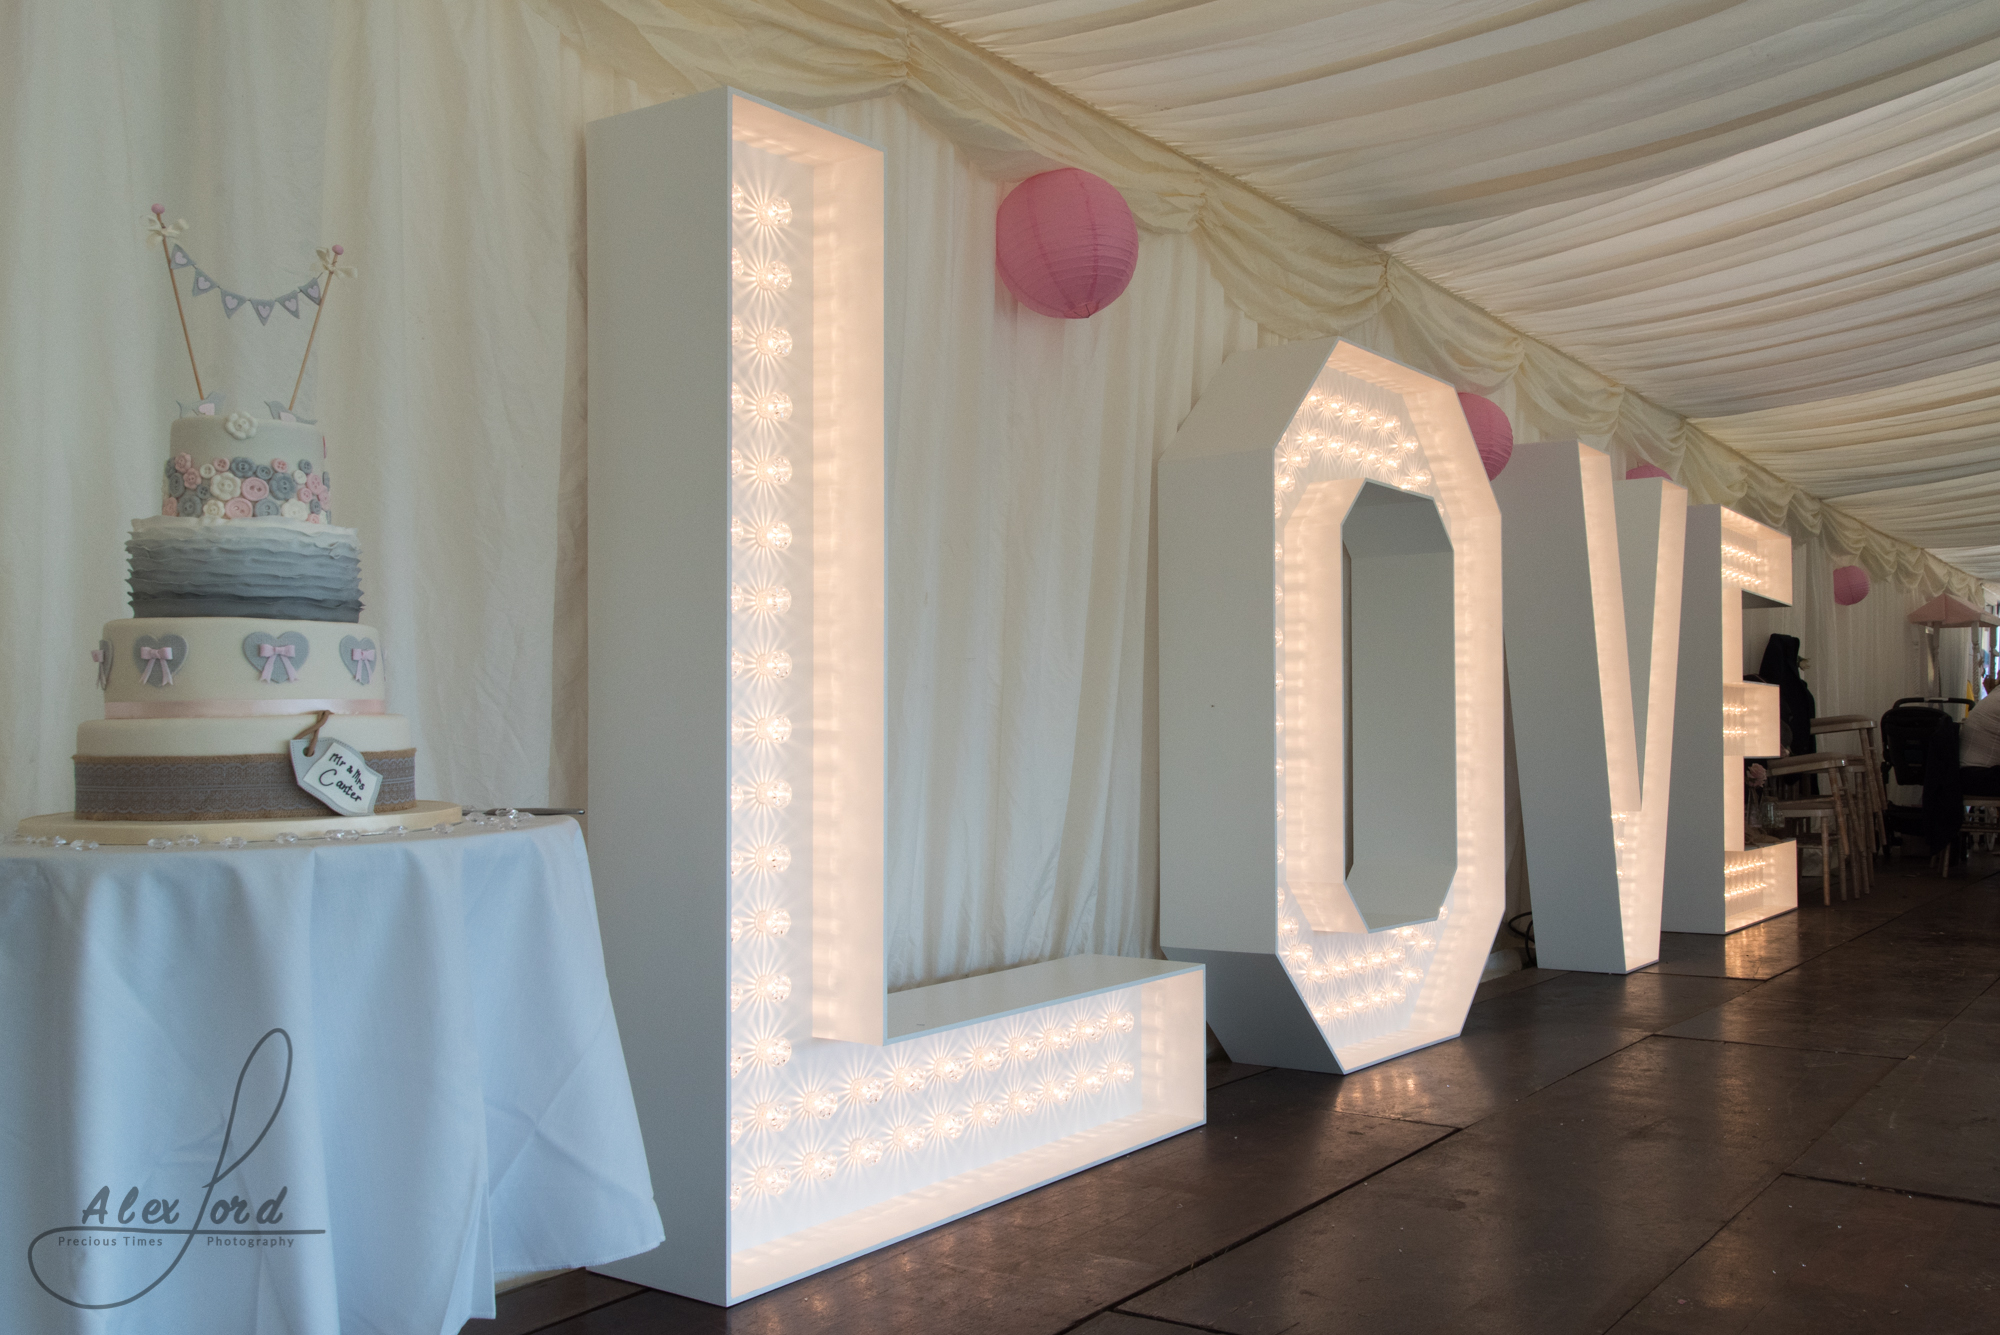 Giant love letters sit next to the wedding cake in the reception marquee